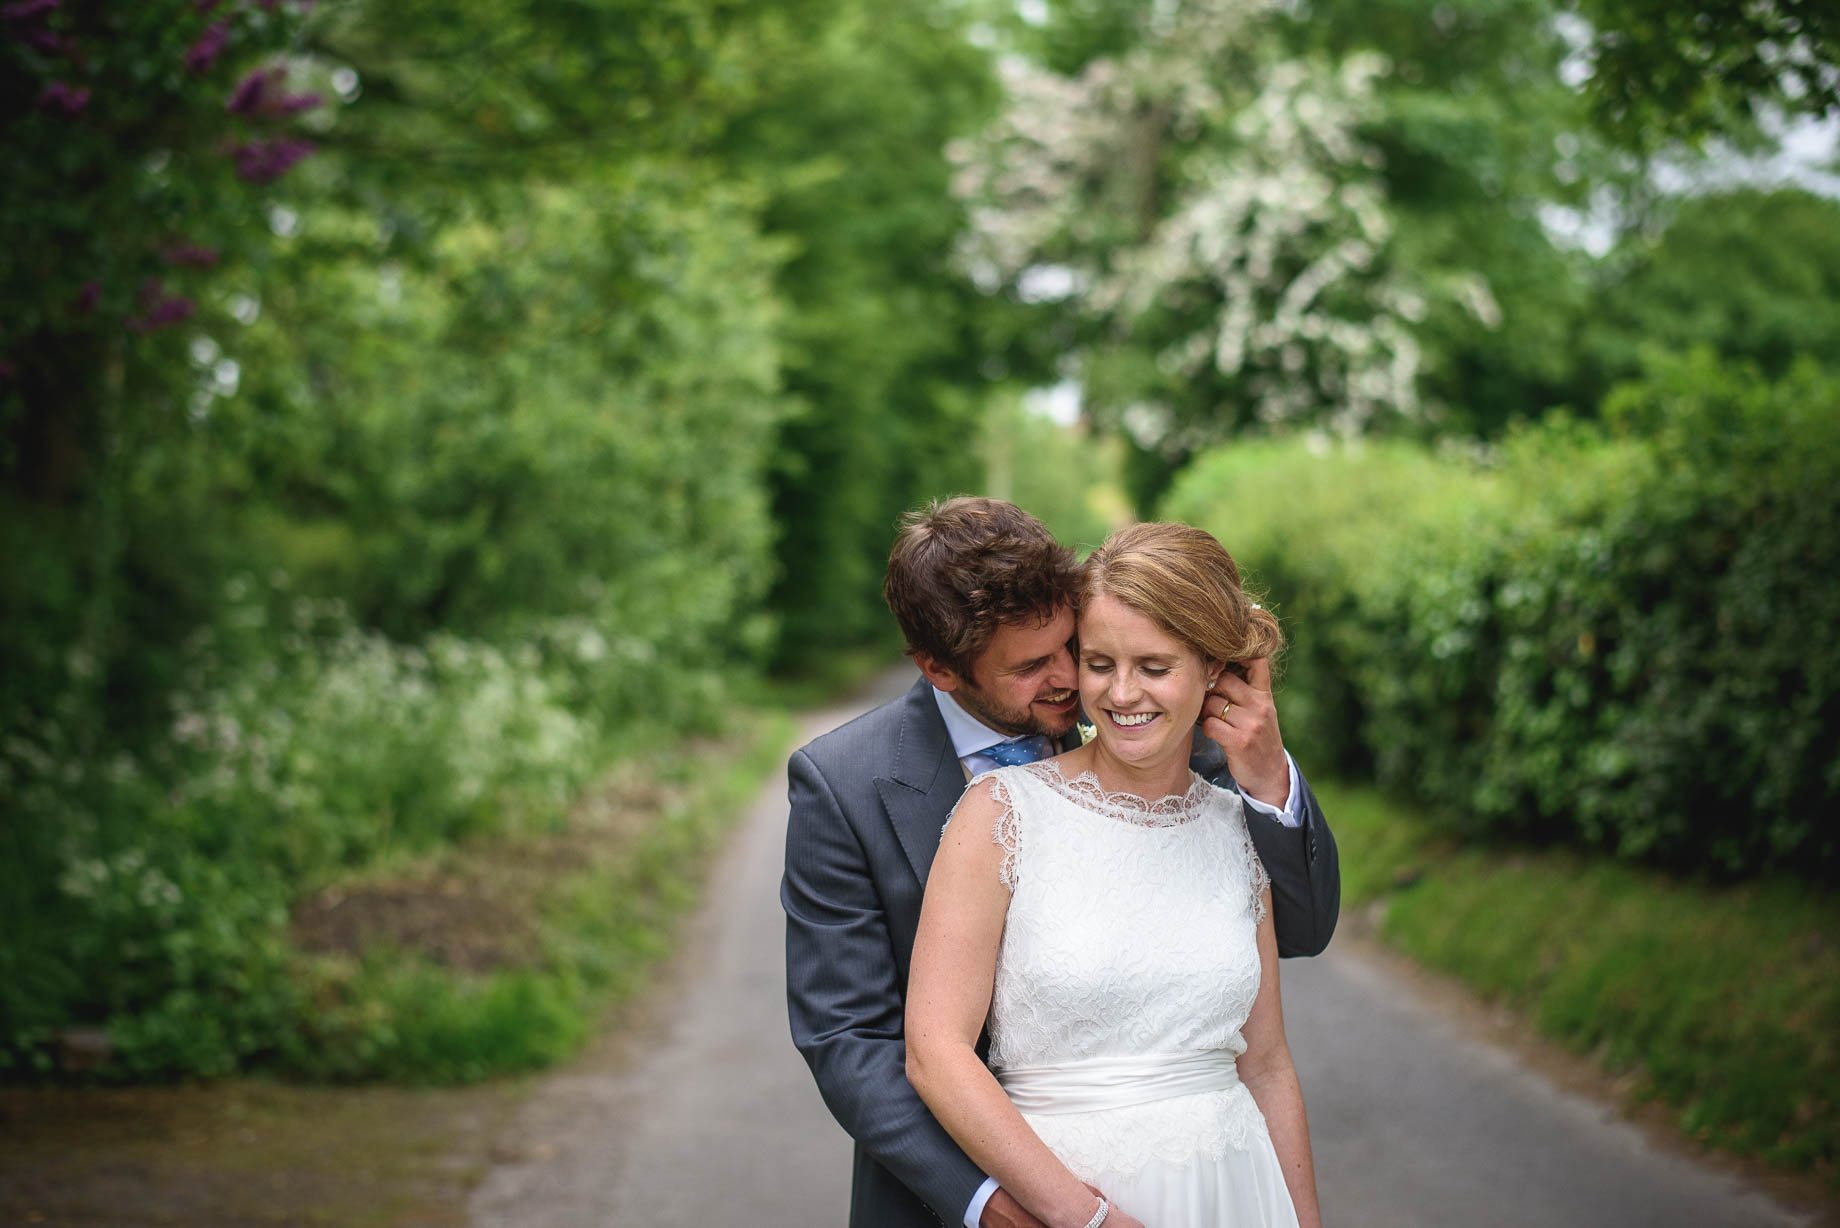 Wiltshire wedding photography by Guy Collier - Lucie and Matt (98 of 198)